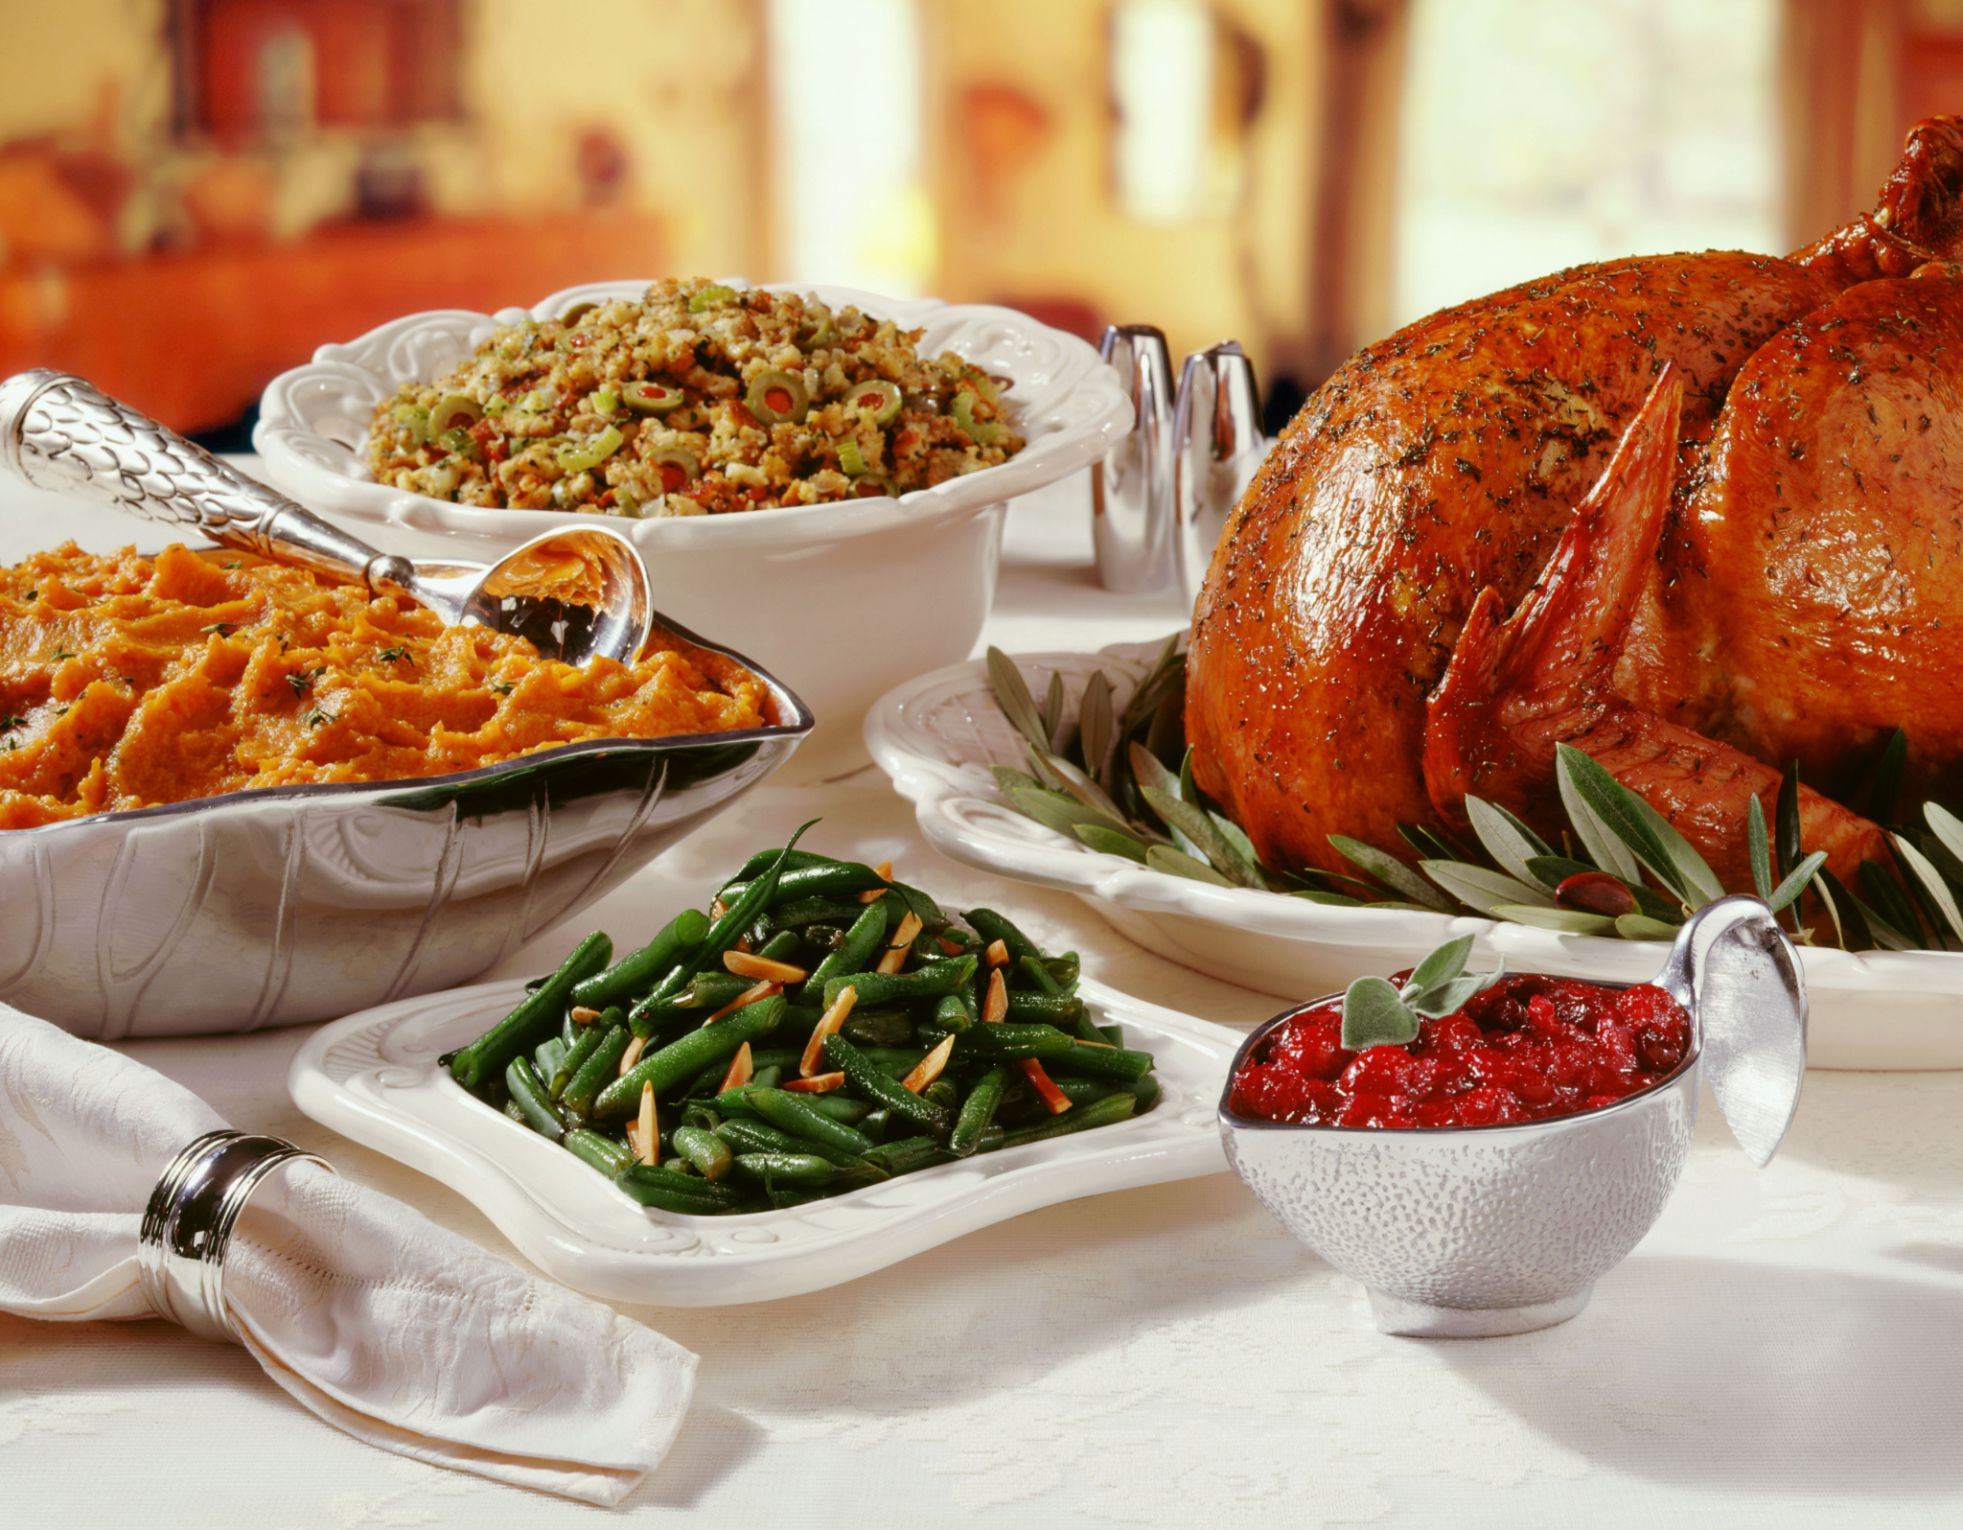 Holiday Foods That Are Good for Your Diet